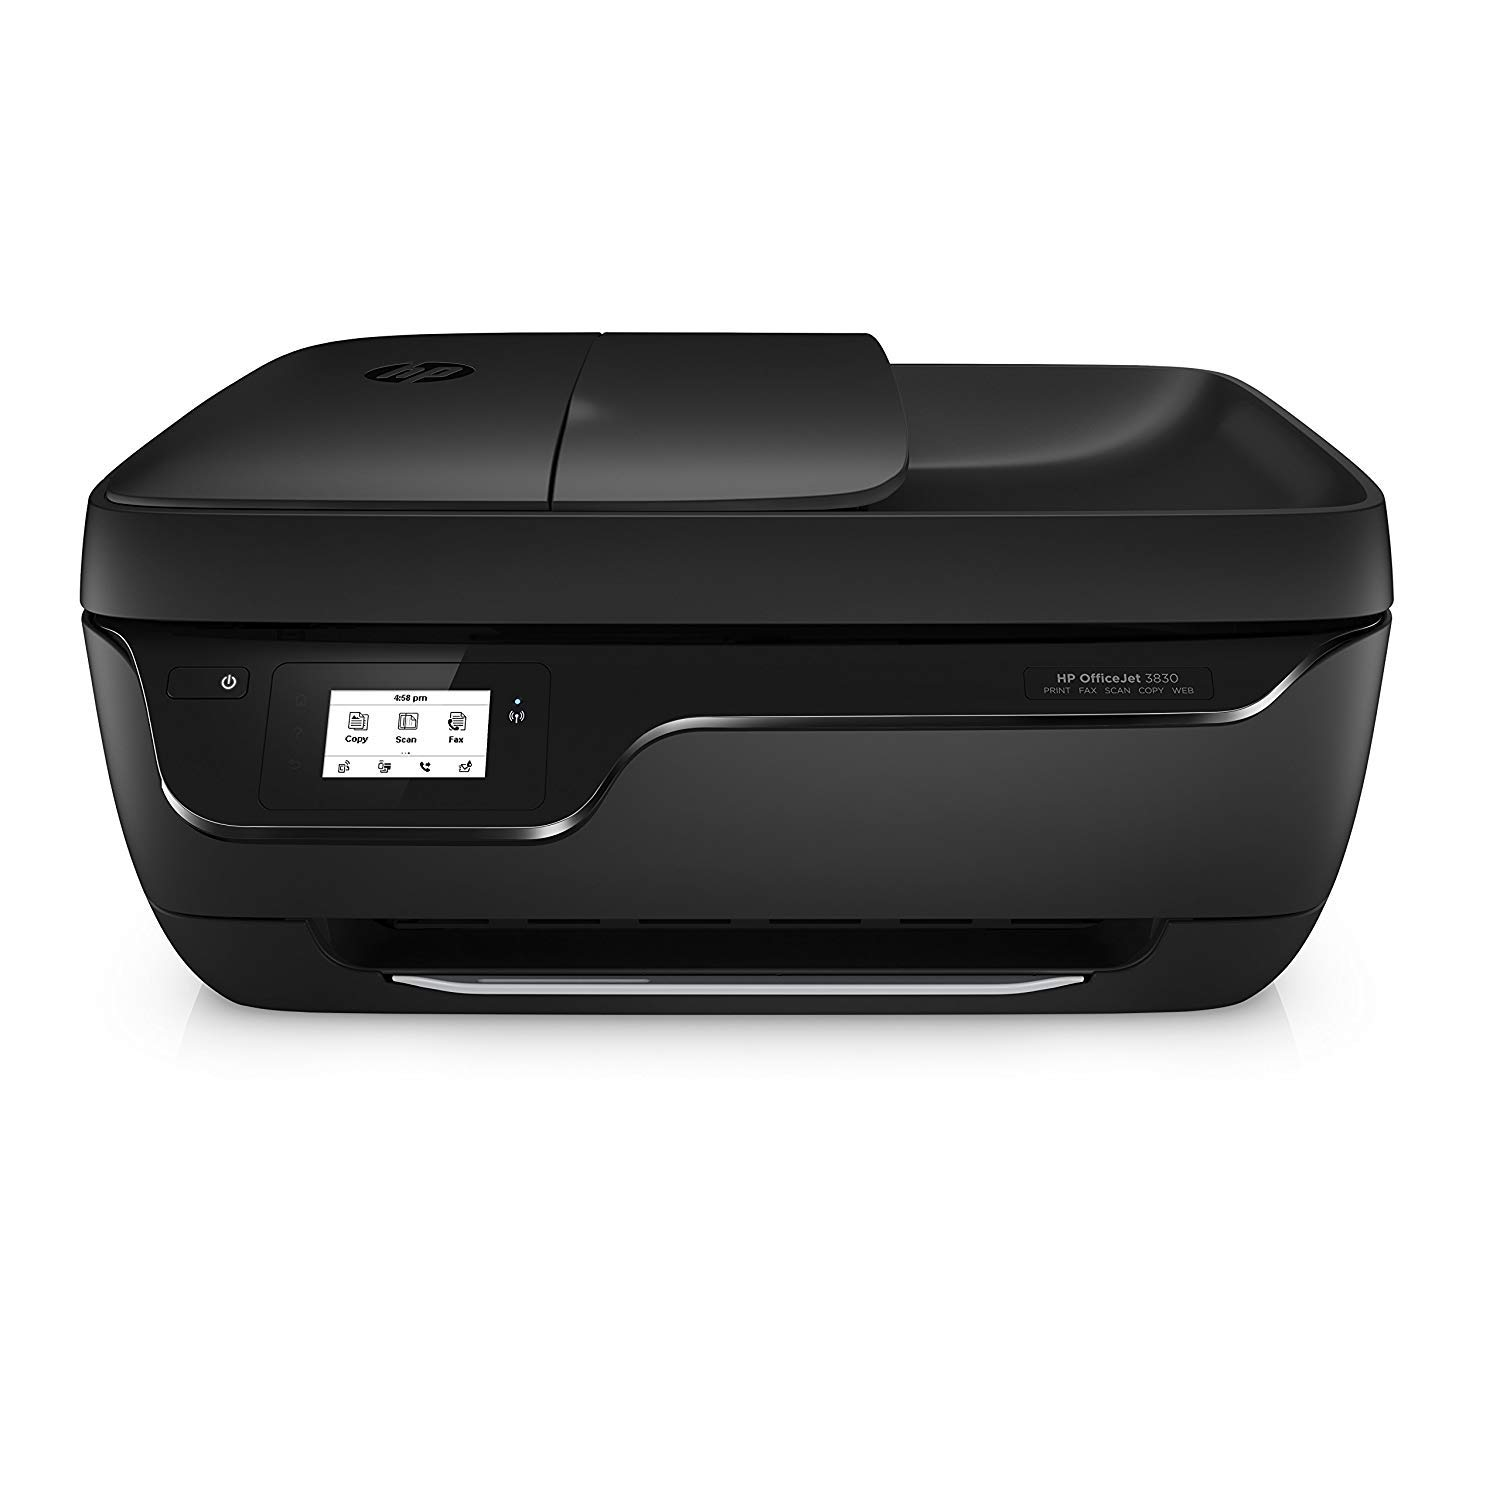 HP OfficeJet 3830 All-in-One Wireless Printer with Mobile Printing, Instant Ink ready (K7V40A)